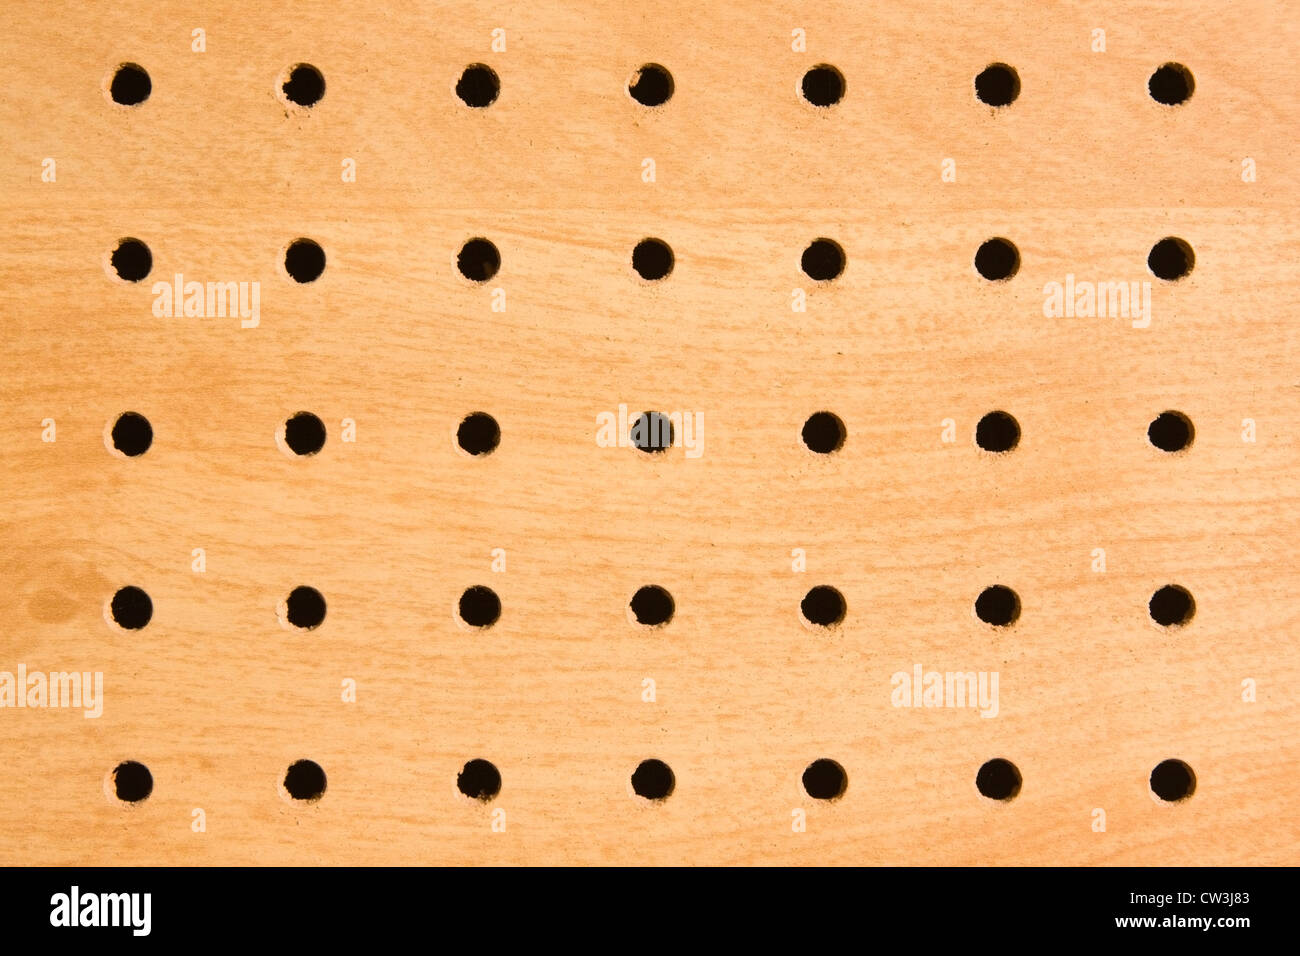 Pegboard holes used for hanging and storing tools. - Stock Image